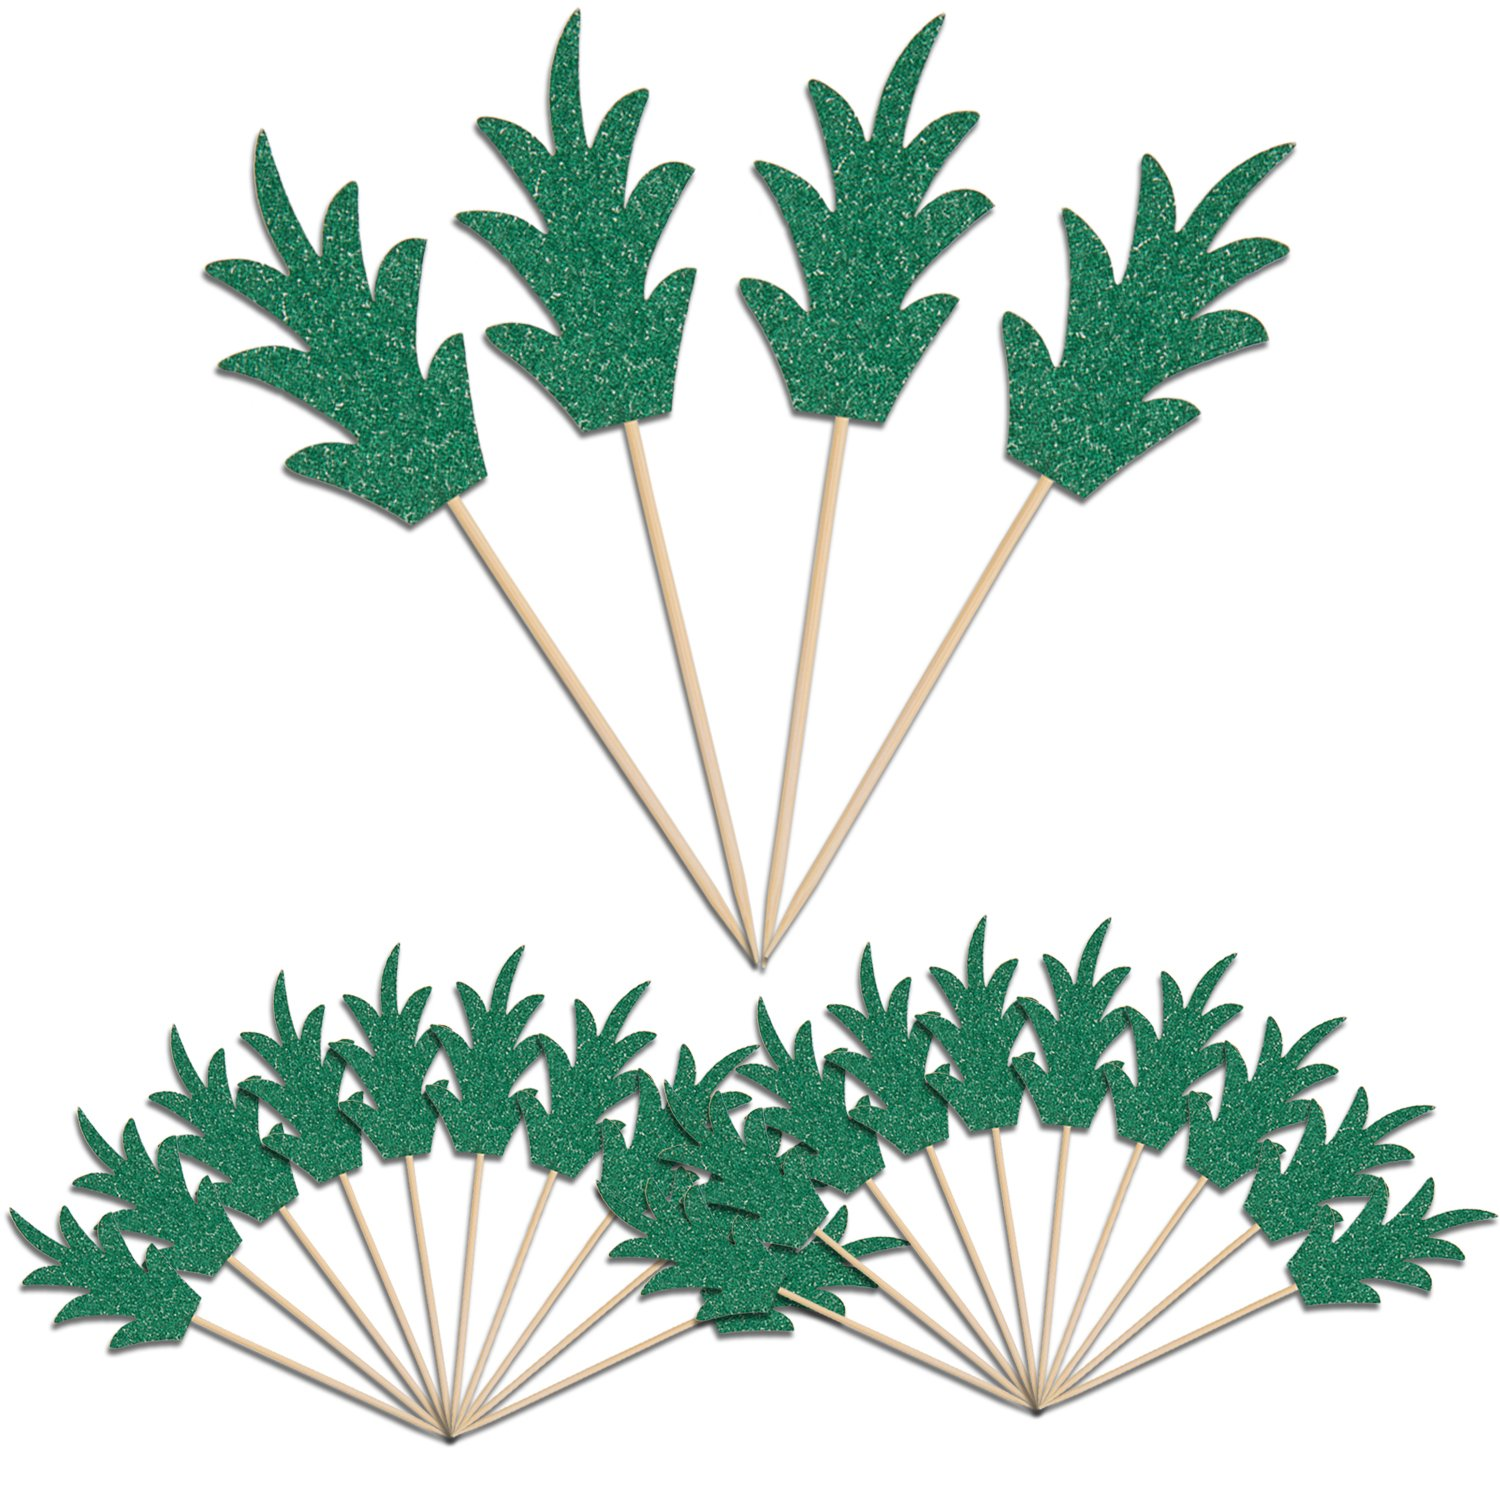 Green Pineapple Cupcake Toppers, LUTER 24 Pcs Donut Toppers Glitter Pineapple Picks for Luau Bridal Shower Tropical Summer Party Cake Food Decoration Supplies